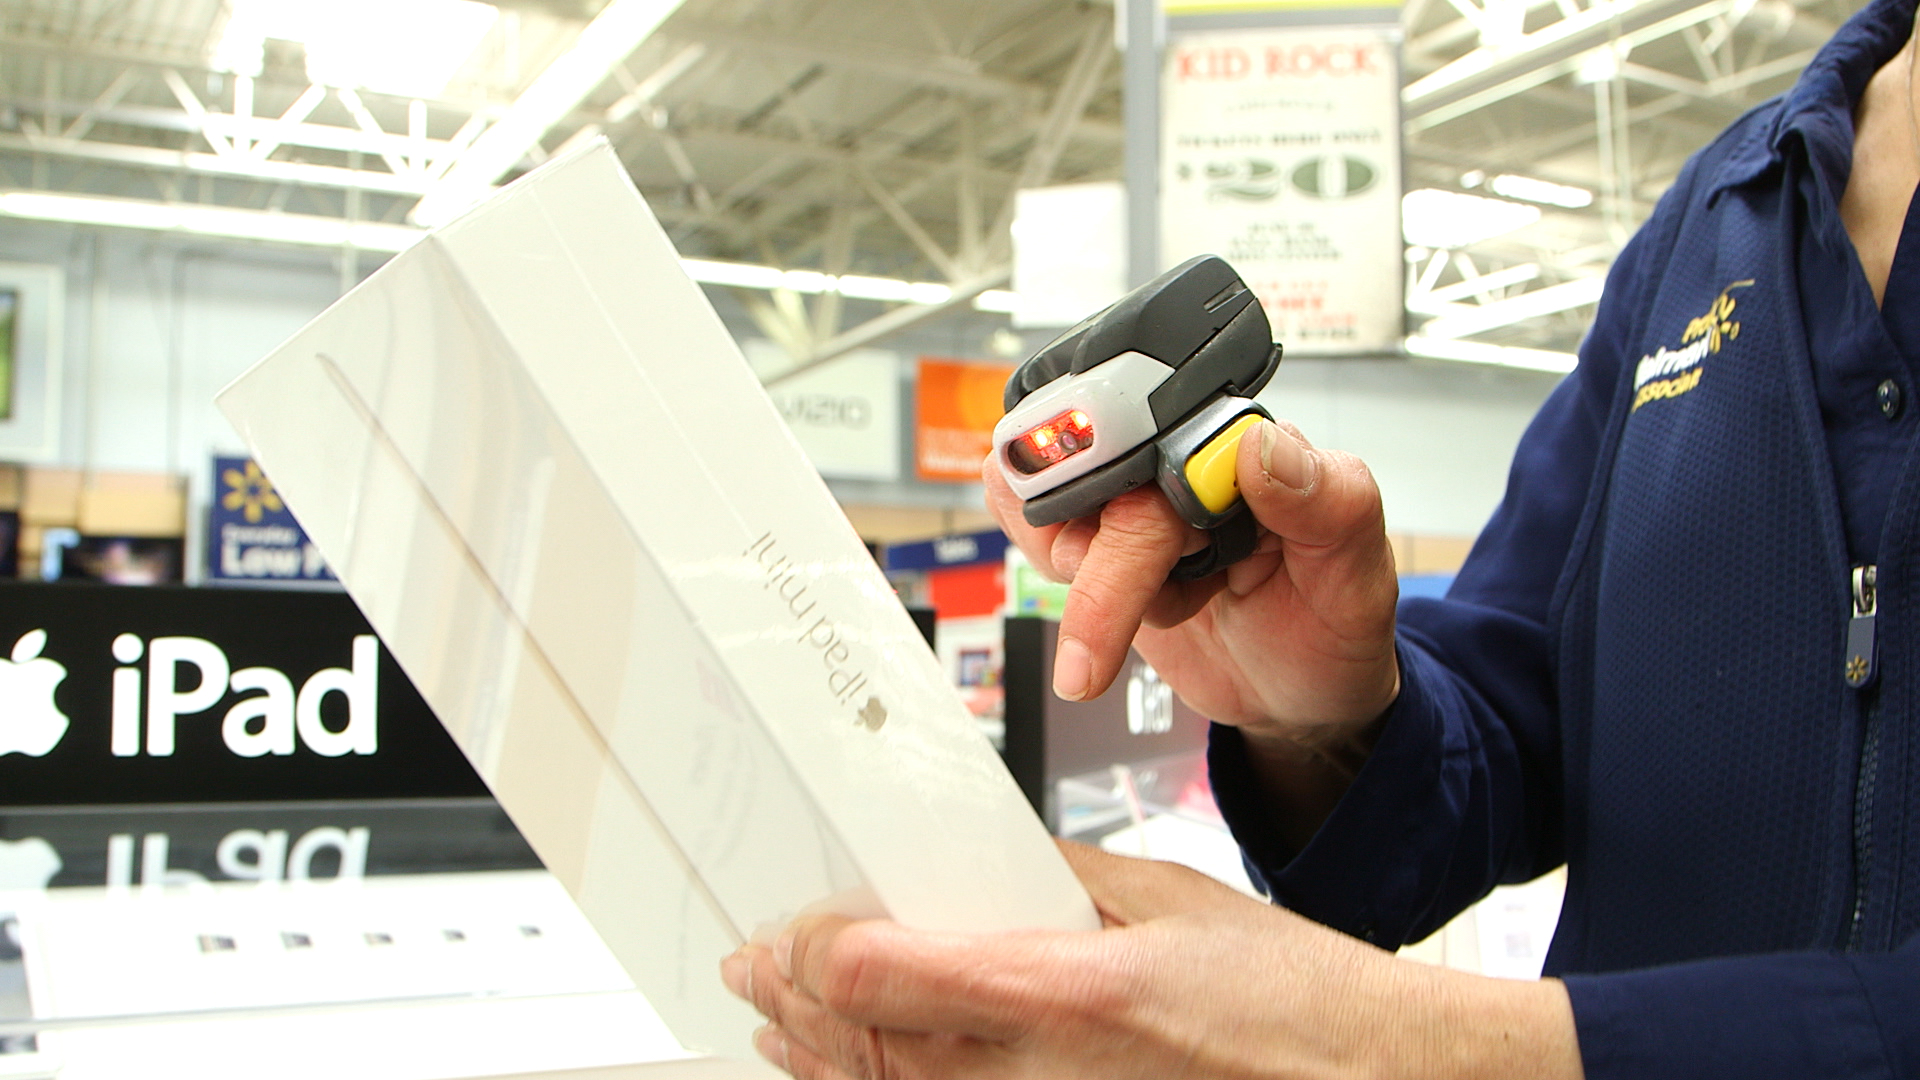 walmart e commerce fulfillment worker scanning ipad for ship from image